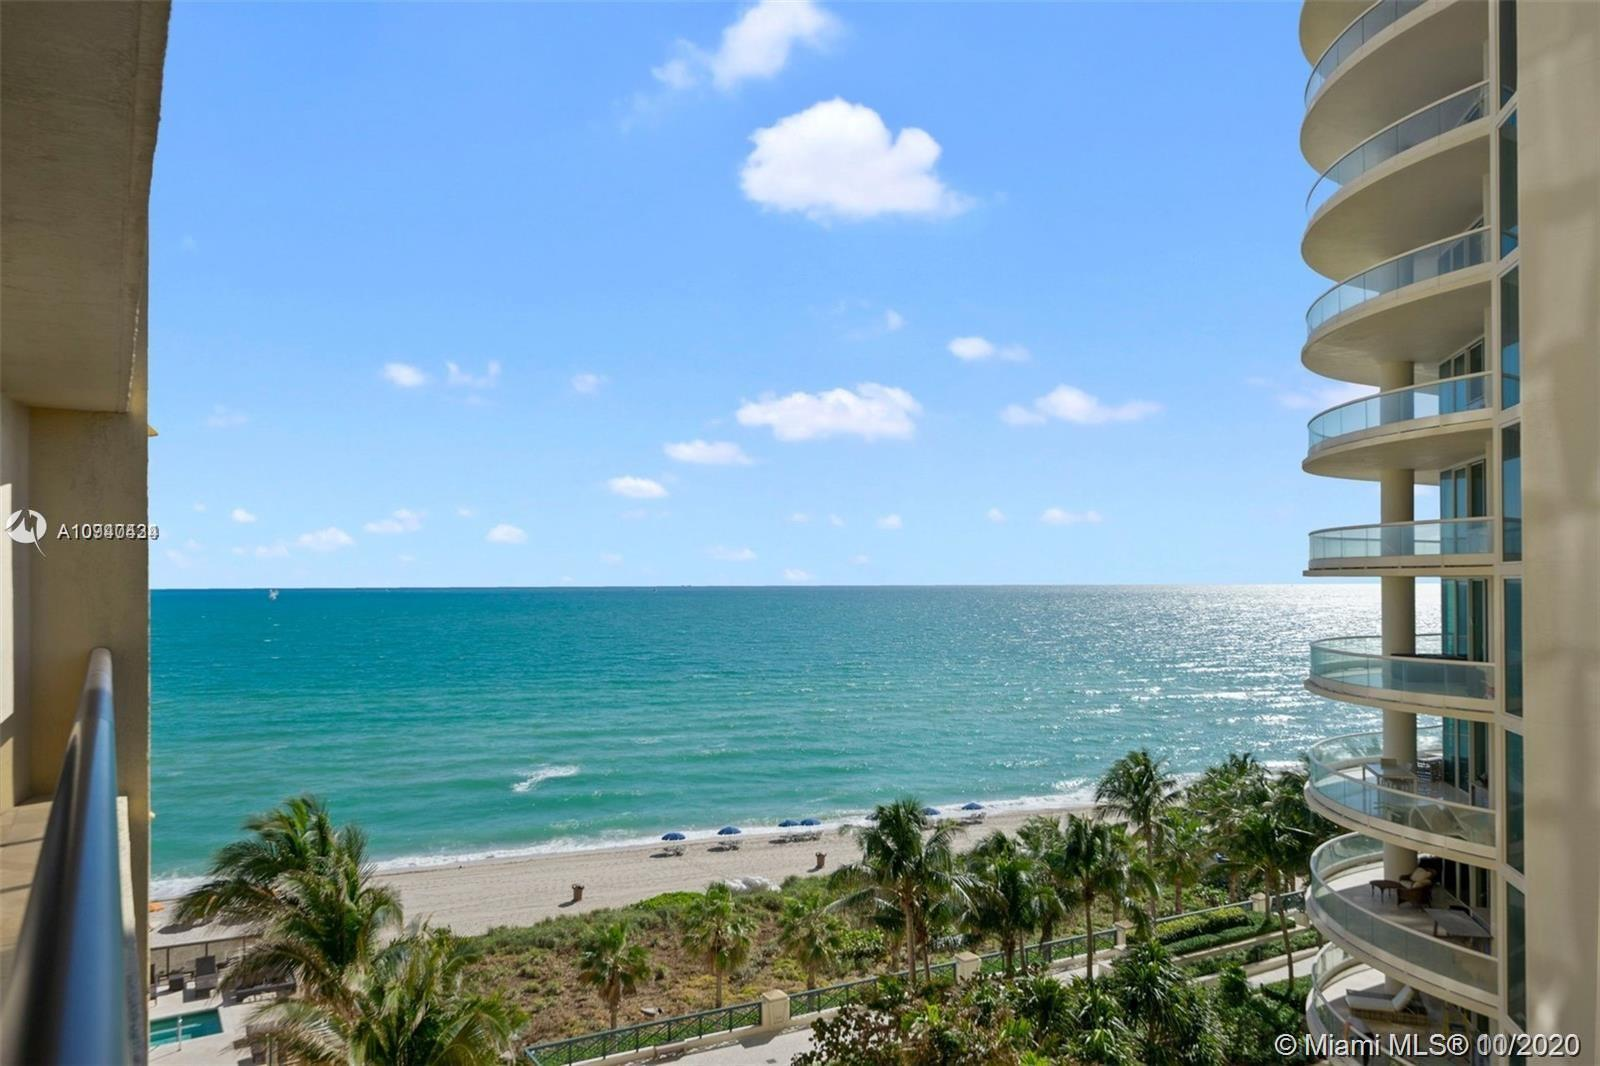 BEST PRICE UNIT IN SAYAN PRIVATE EXCLUSIVE TOWER WITH DIRECT BEACH ACCESS  STATE OF THE ART AMENITIE